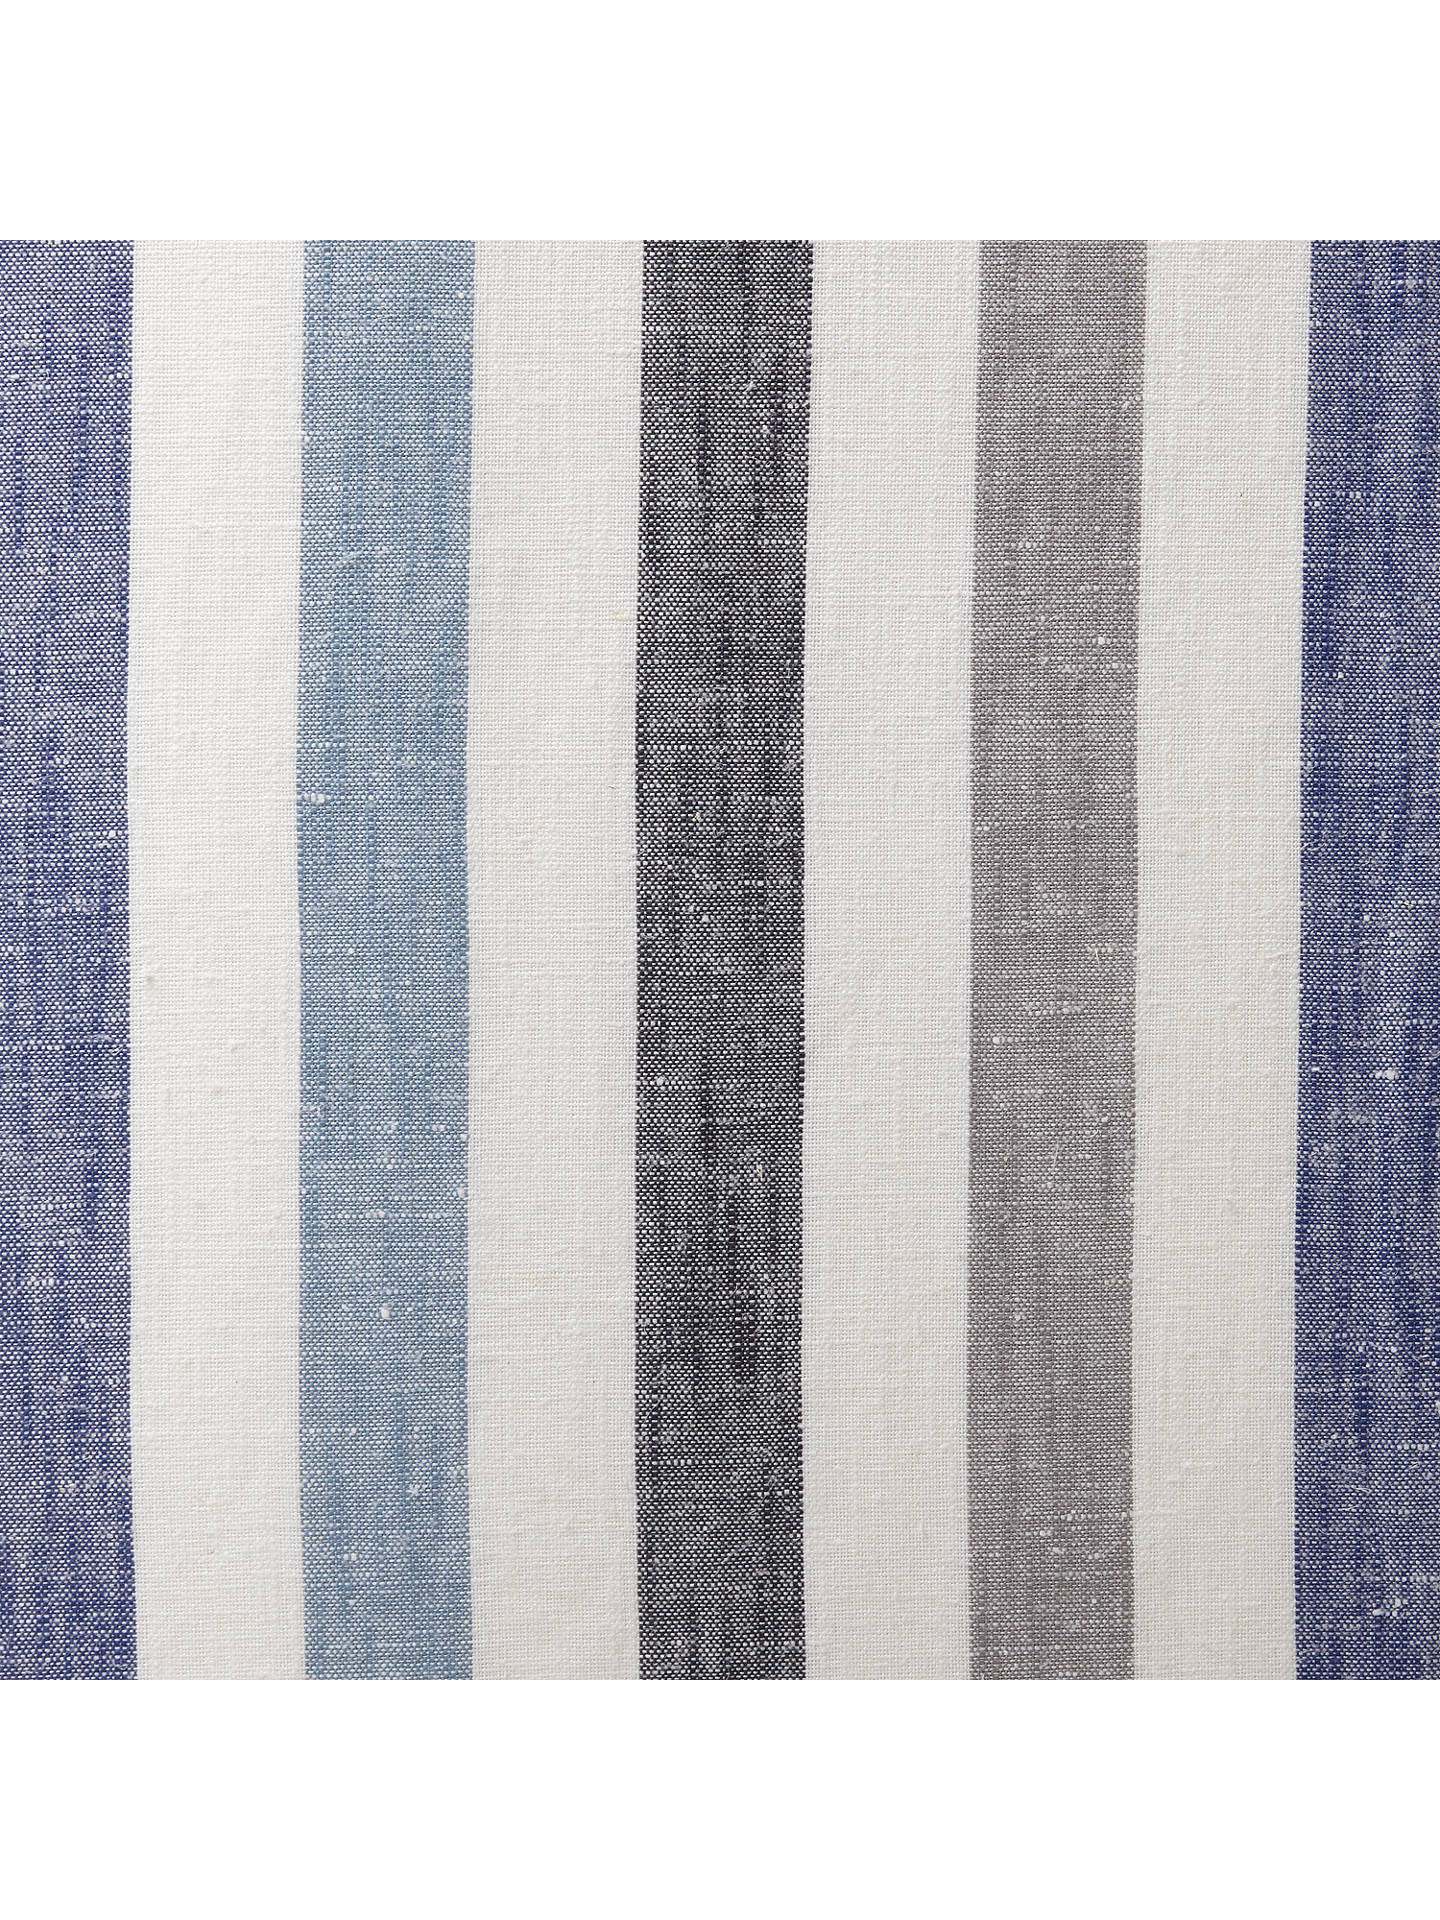 BuyJohn Lewis & Partners Penzance Stripe Pair Lined Eyelet Curtains, Blue, W167 x Drop 137cm Online at johnlewis.com